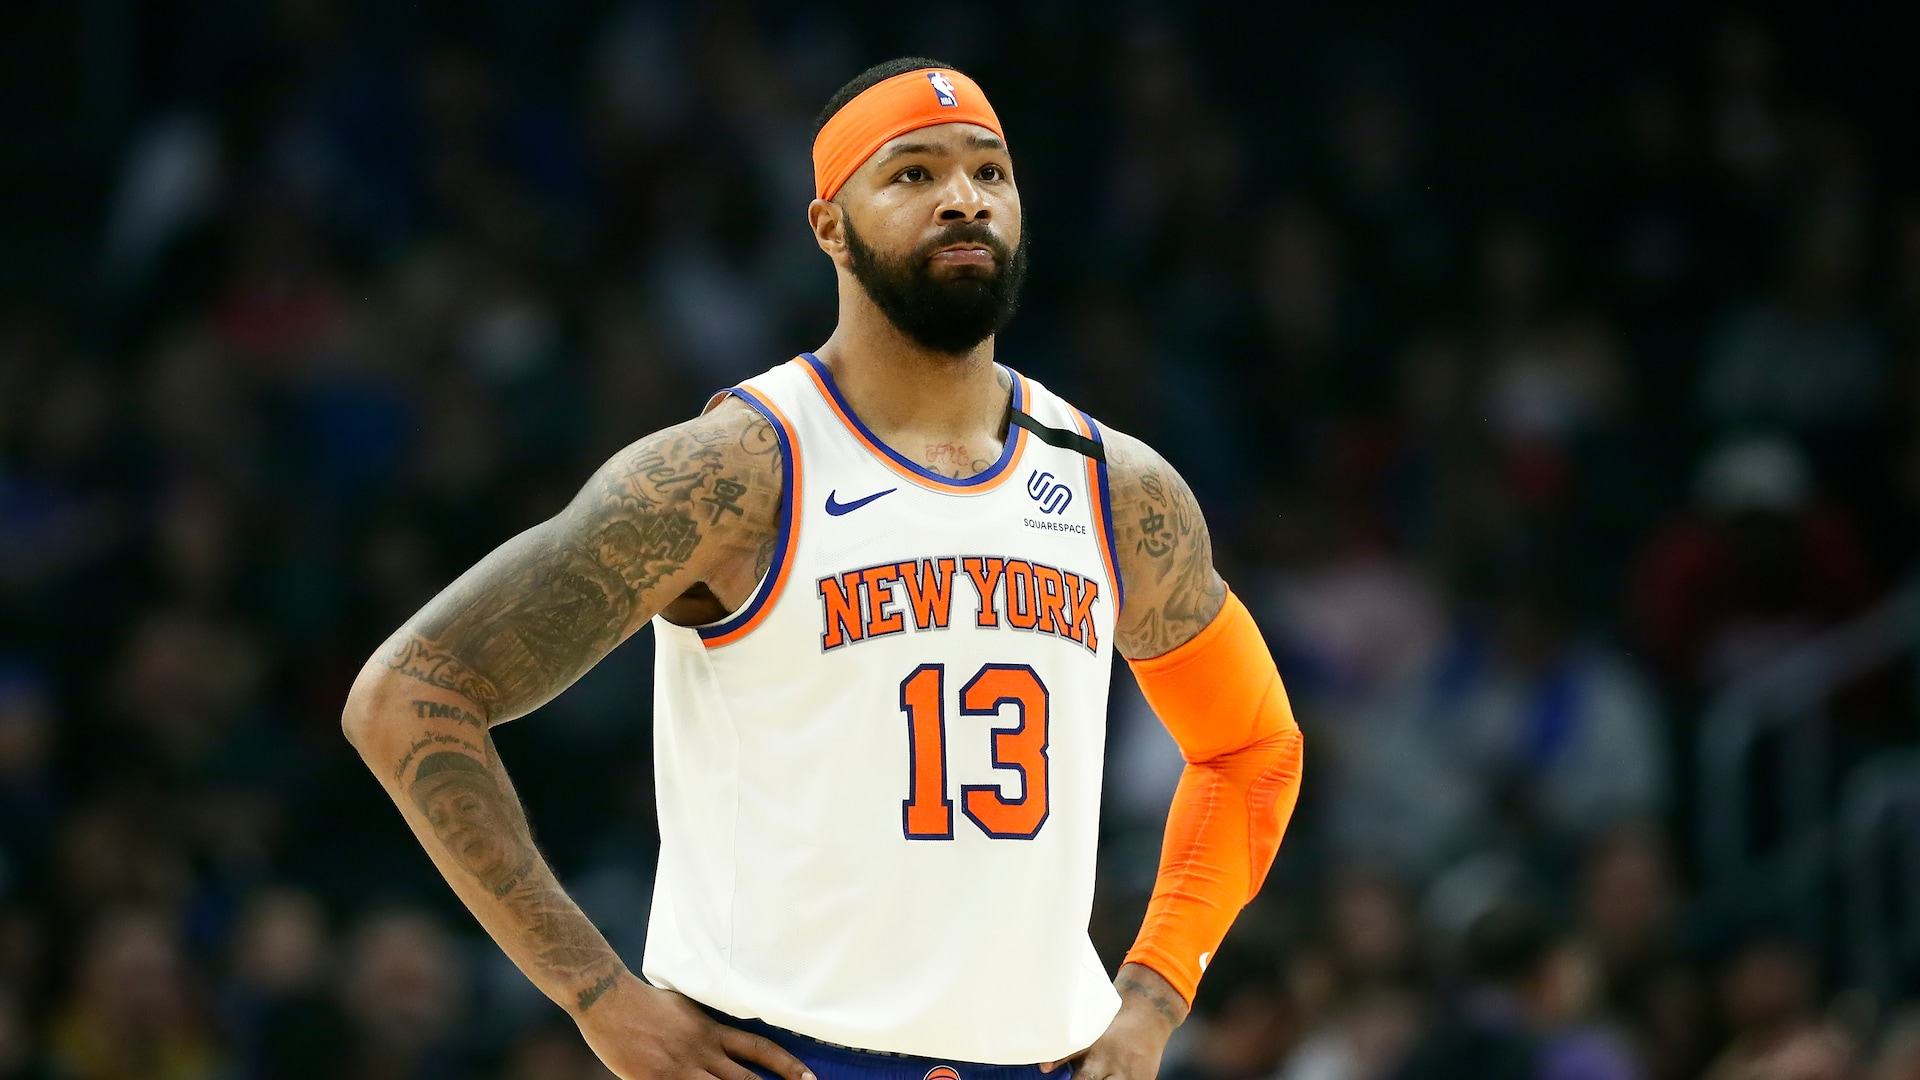 Clippers adding Marcus Morris in 3-team trade